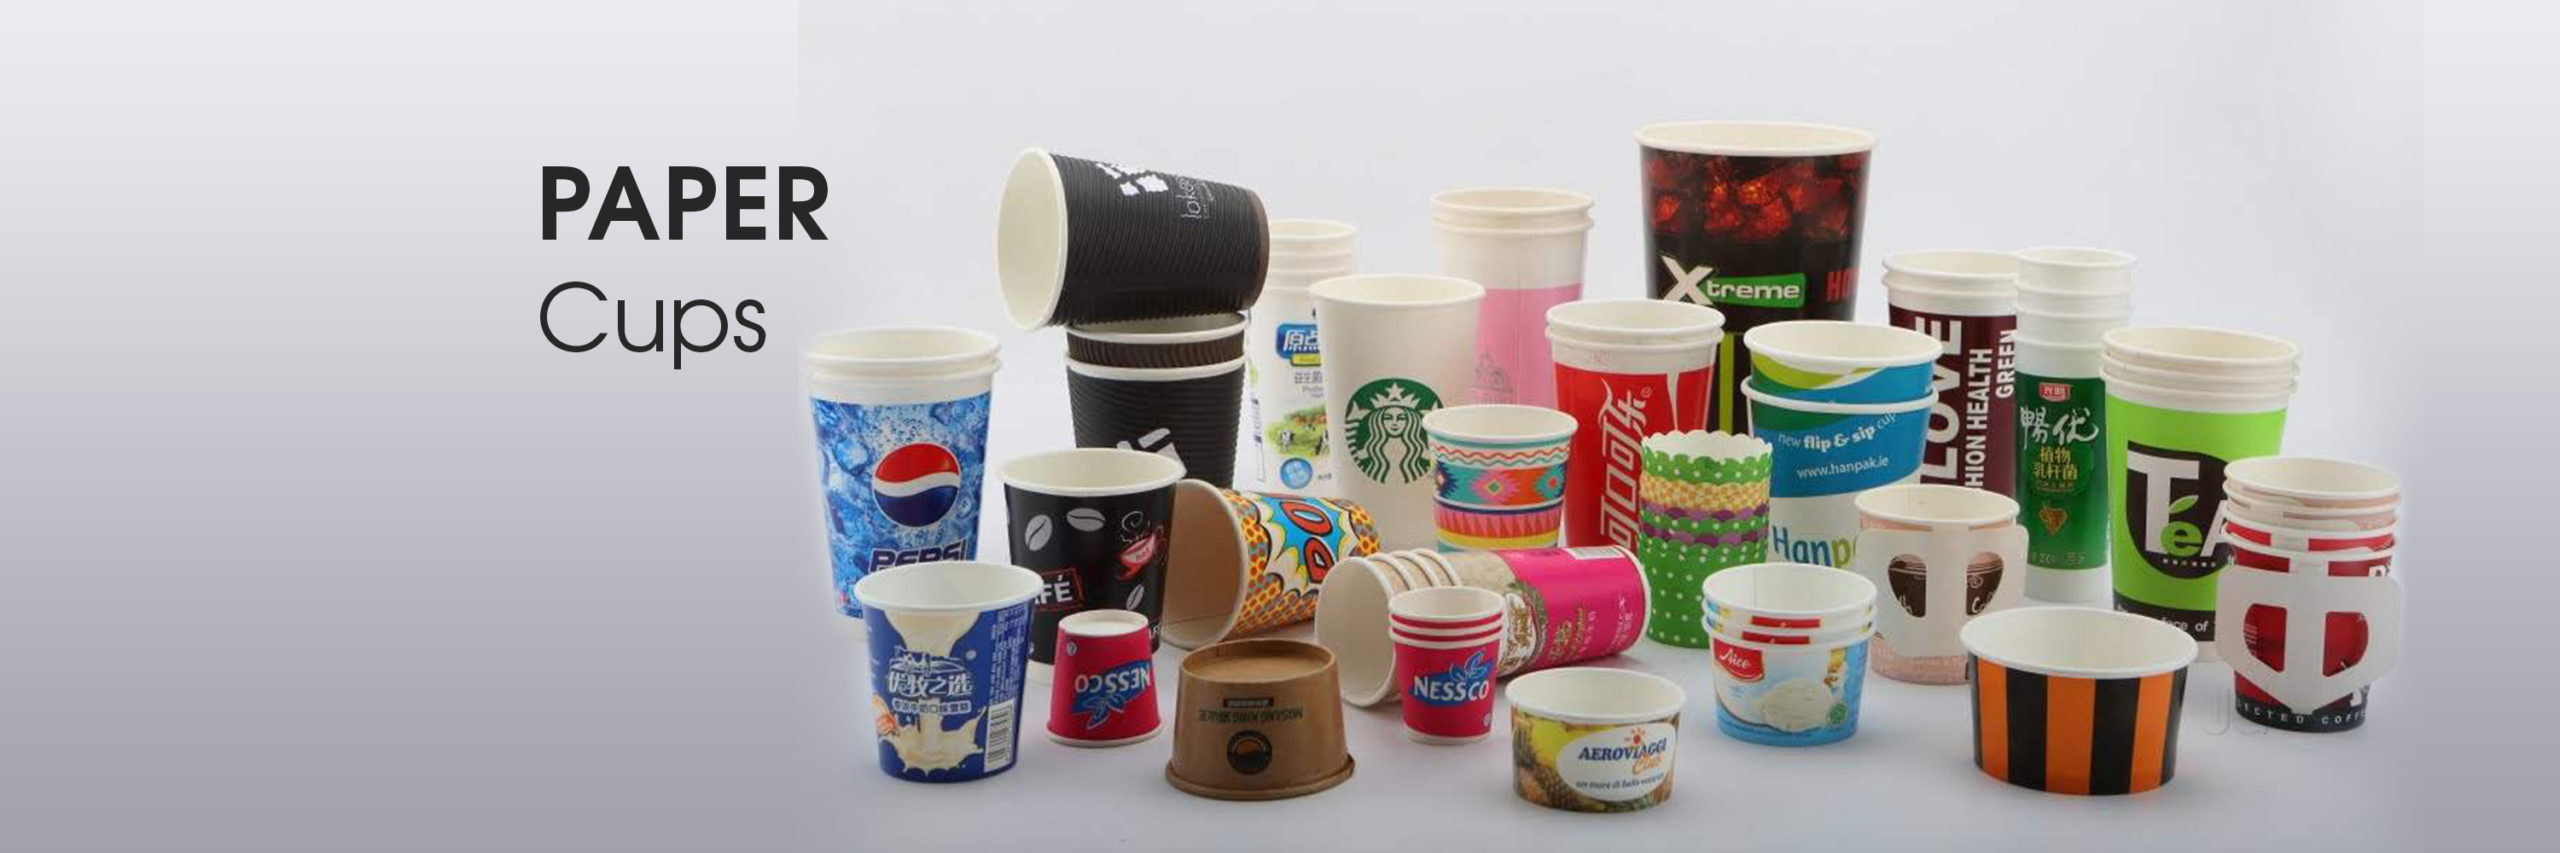 paper cups home page banner